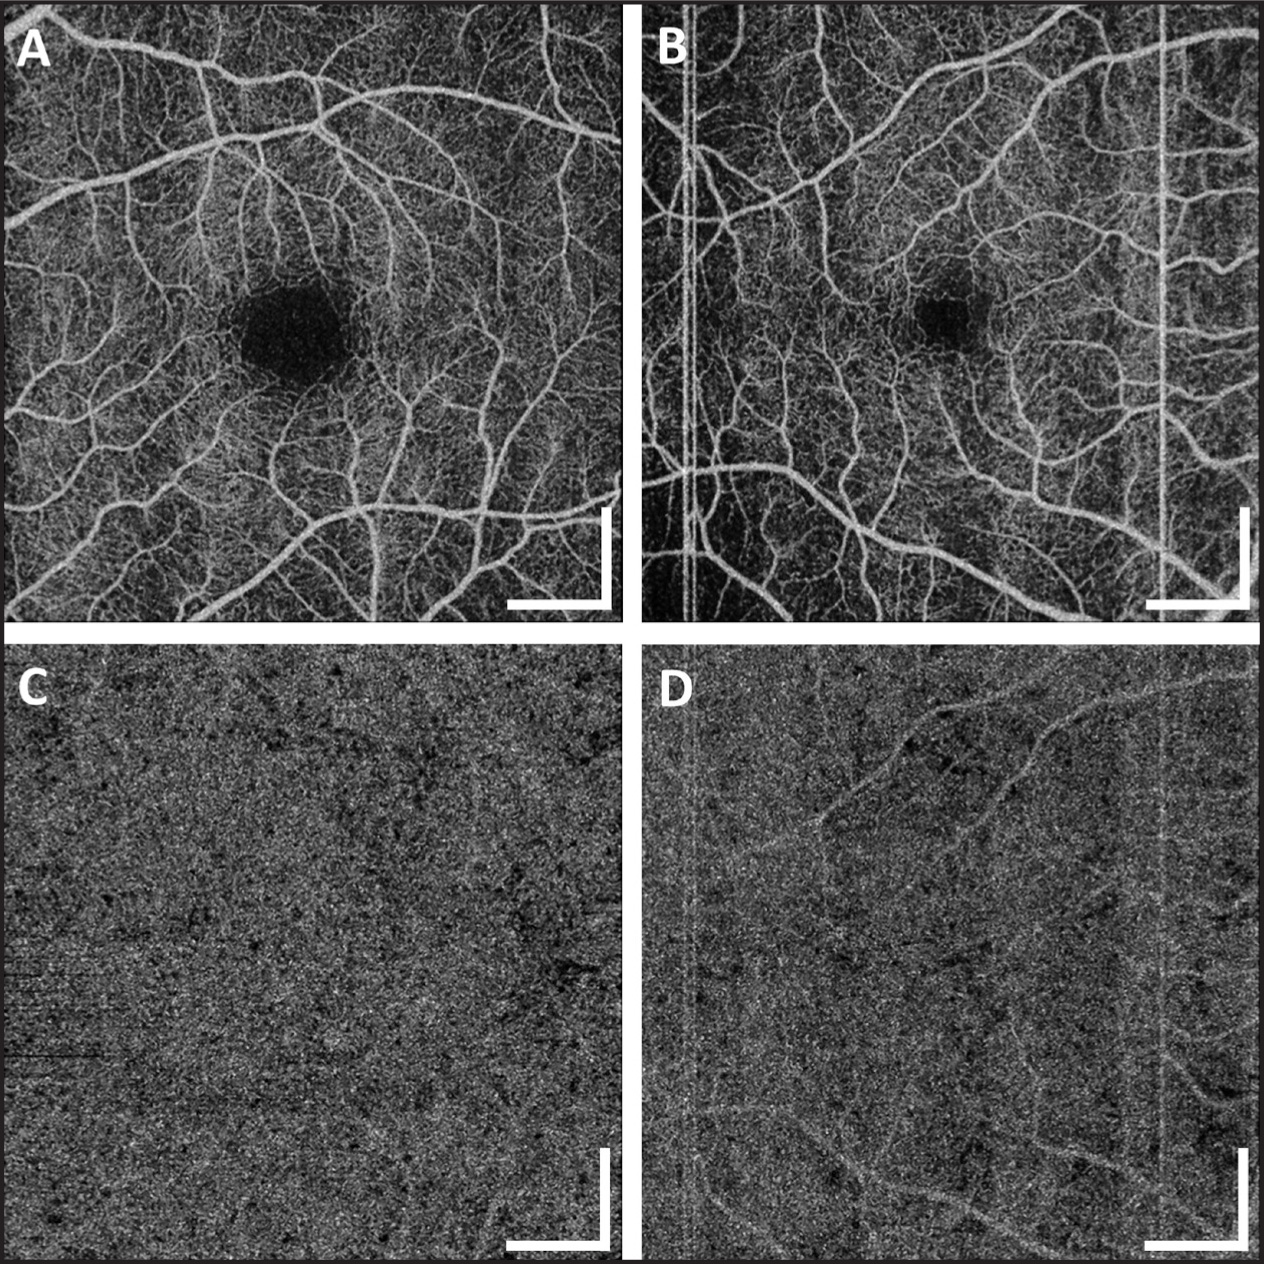 (A, C) OCT angiograms of a 35-year-old healthy participant. (B, D) OCT angiograms of a 68-year-old healthy participant. (A, B) OCT retinal angiograms over a 6 mm × 6 mm area centered at the fovea. (C, D) OCT choriocapillaris angiograms over the same 6 mm × 6 mm area extracted from the same volumetric scans as used in A and B. Note that the thick retinal vasculature casts angiographic shadows onto the choriocapillaris angiogram. Scale bars: 1 mm.